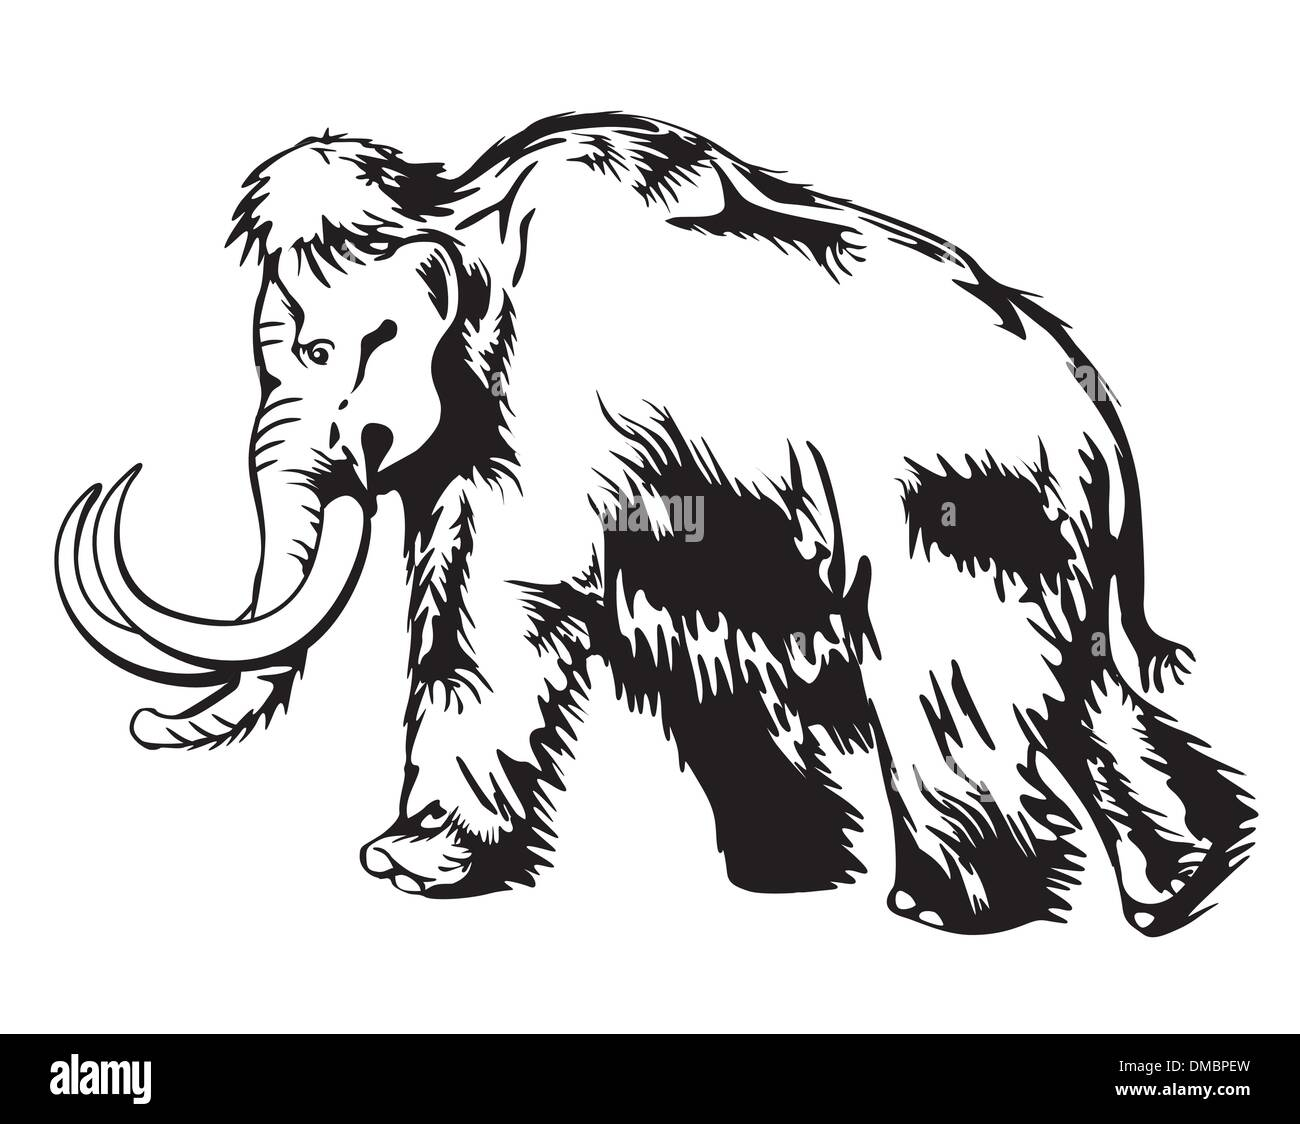 Ice Age Elephant Stock Photos & Ice Age Elephant Stock Images - Alamy